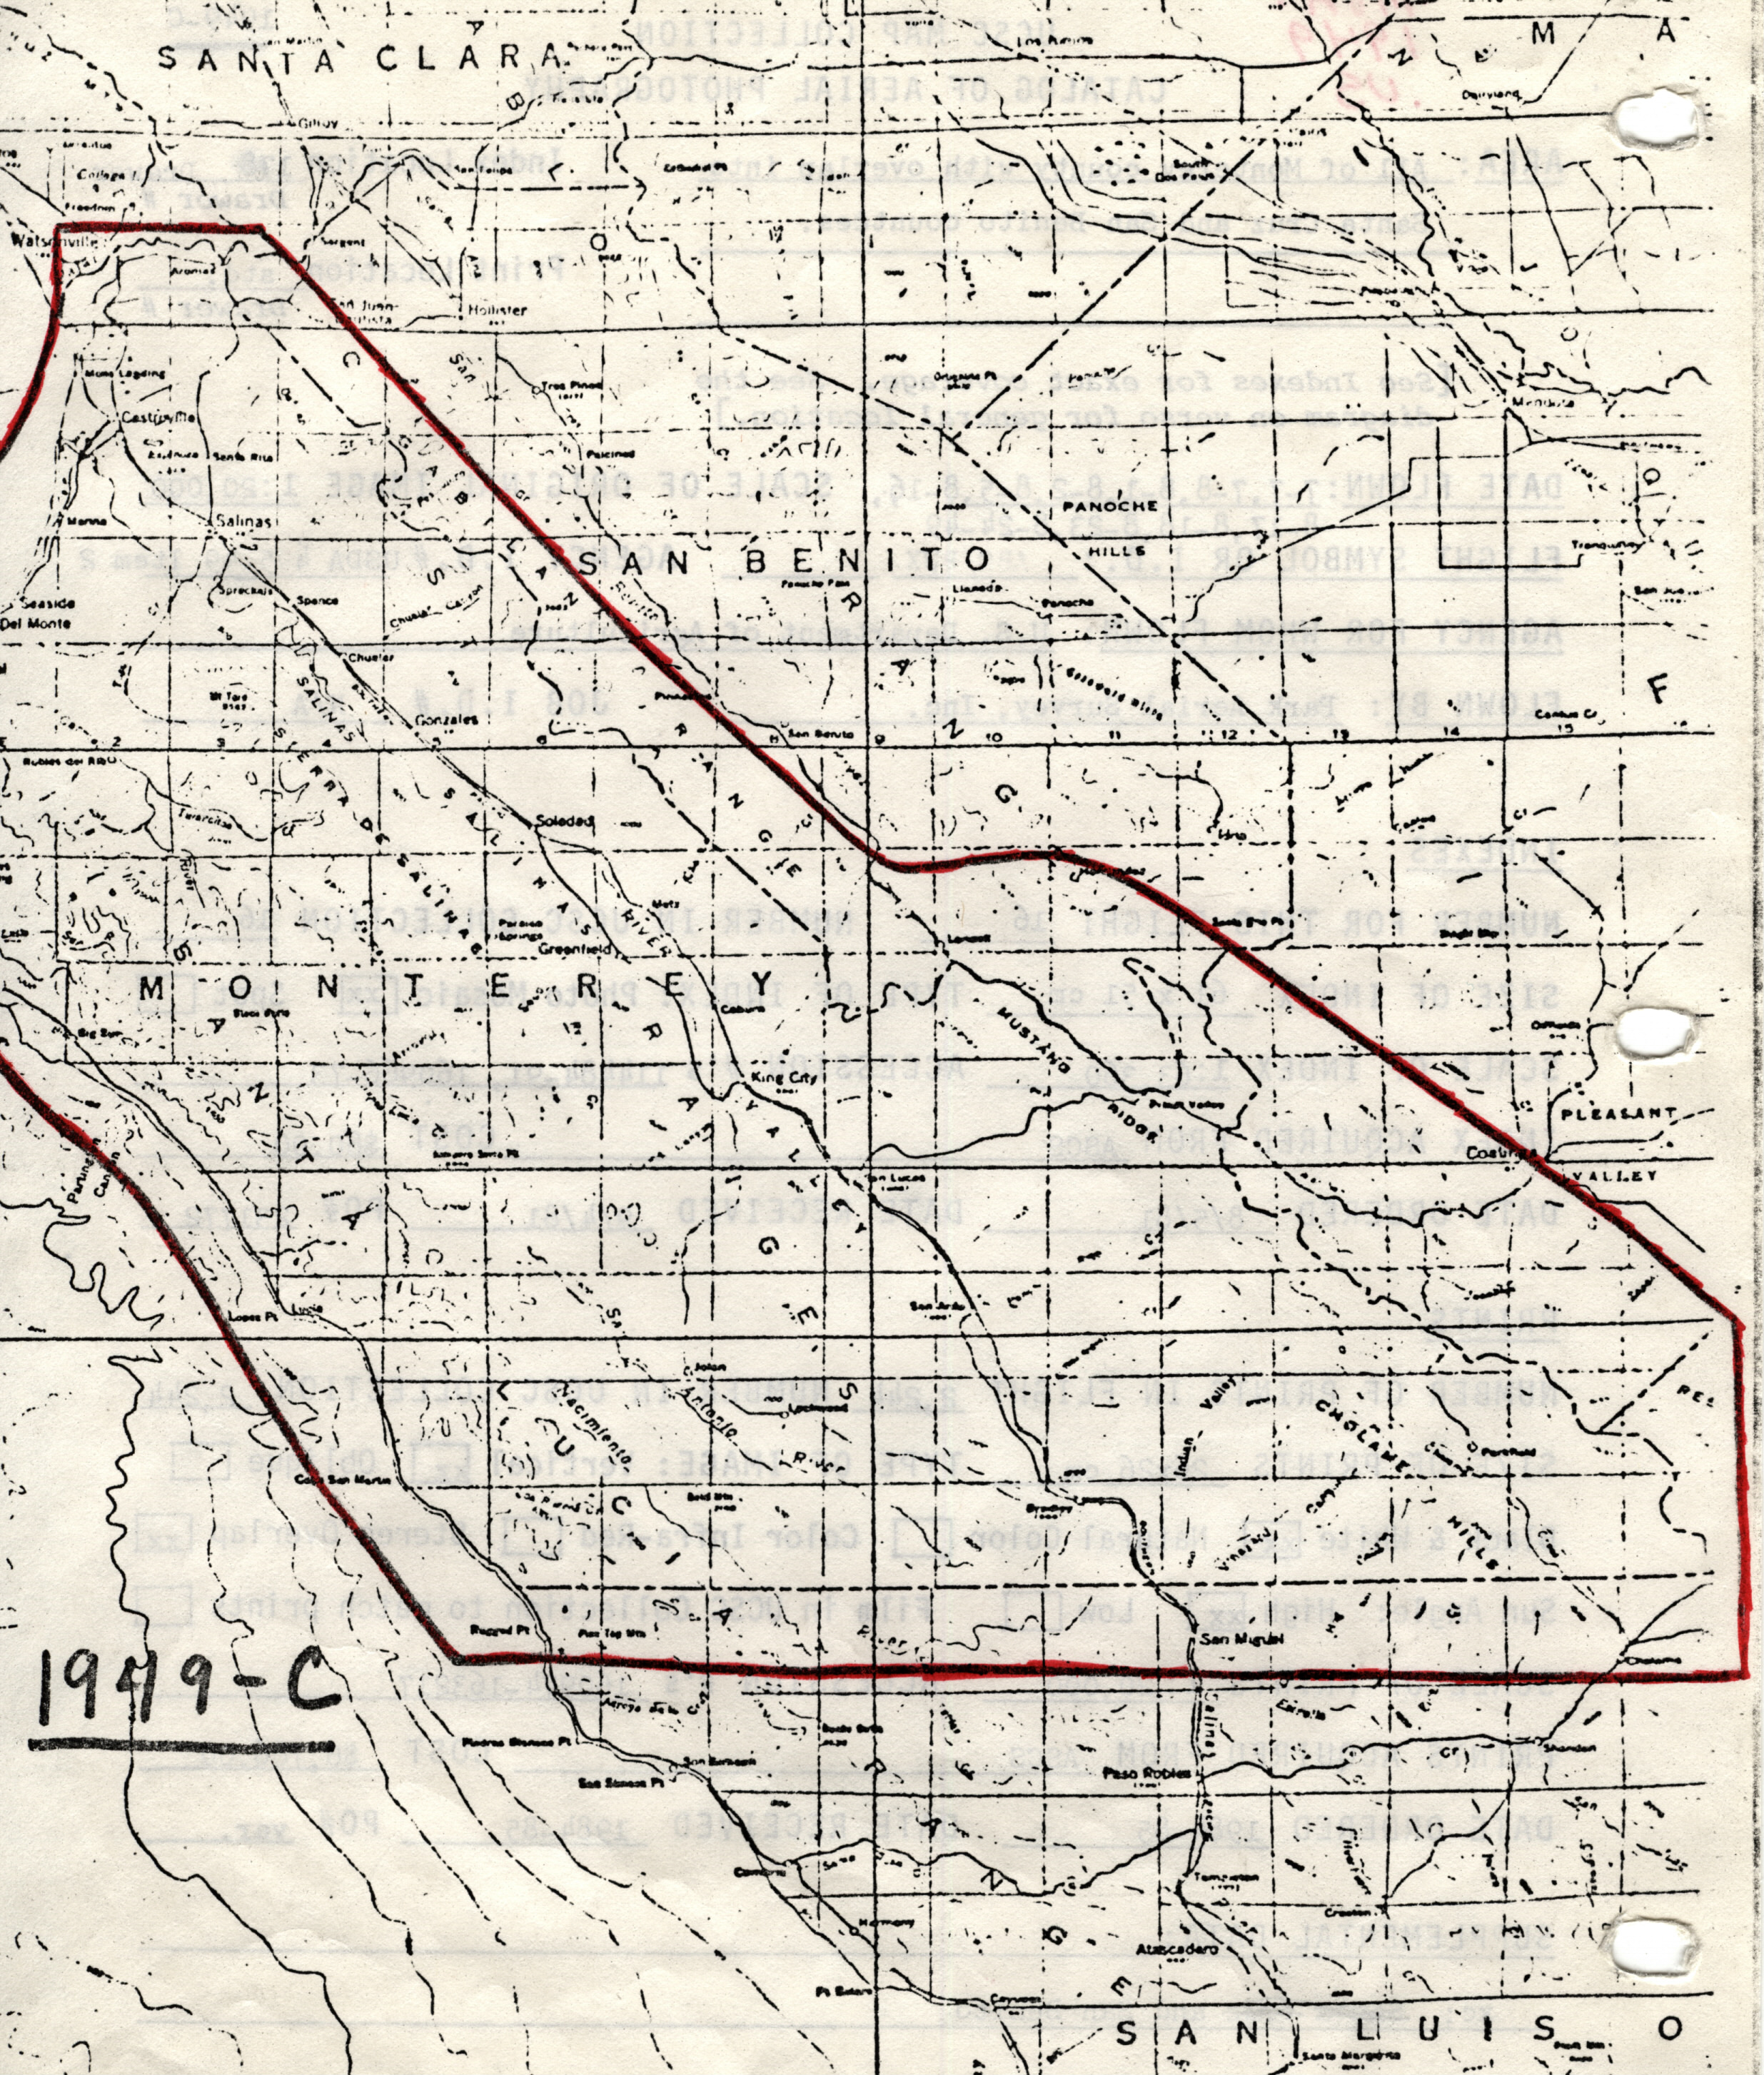 Monterey County California Map.1949 C Monterey County California With Overlap Into Santa Cruz And